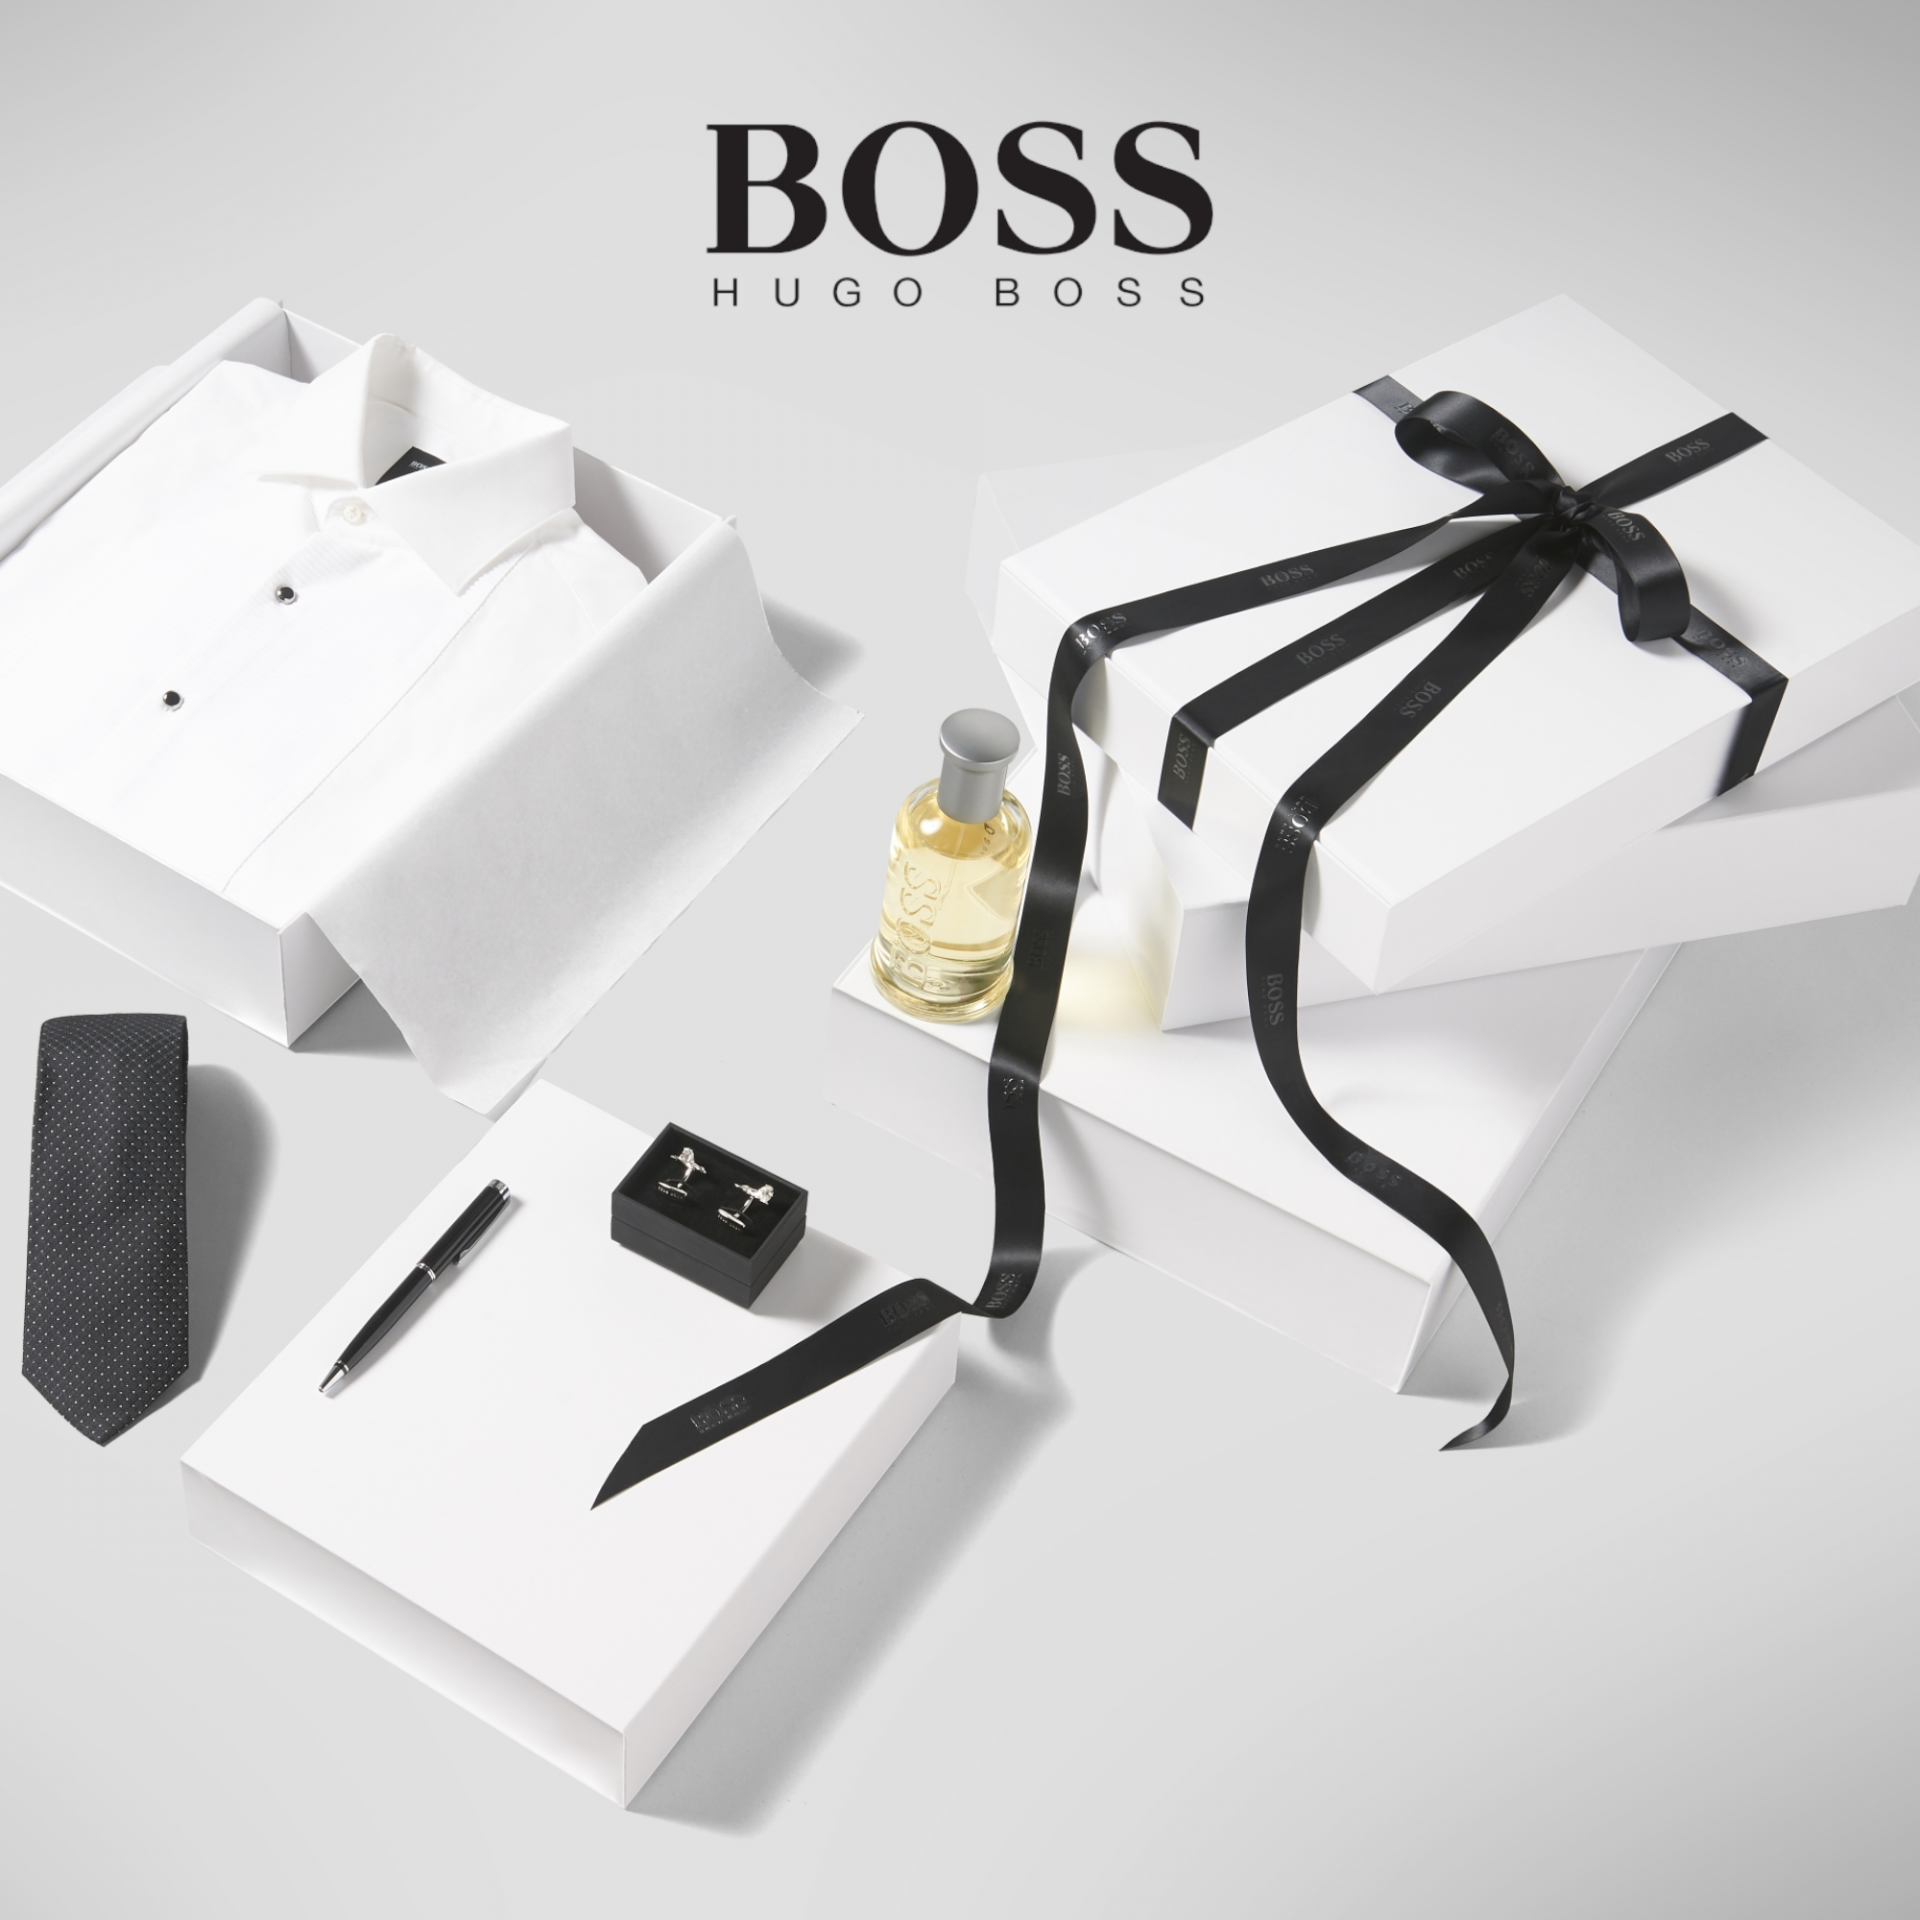 Holiday Gifting: The Absolute Best Gifts for Him And Her